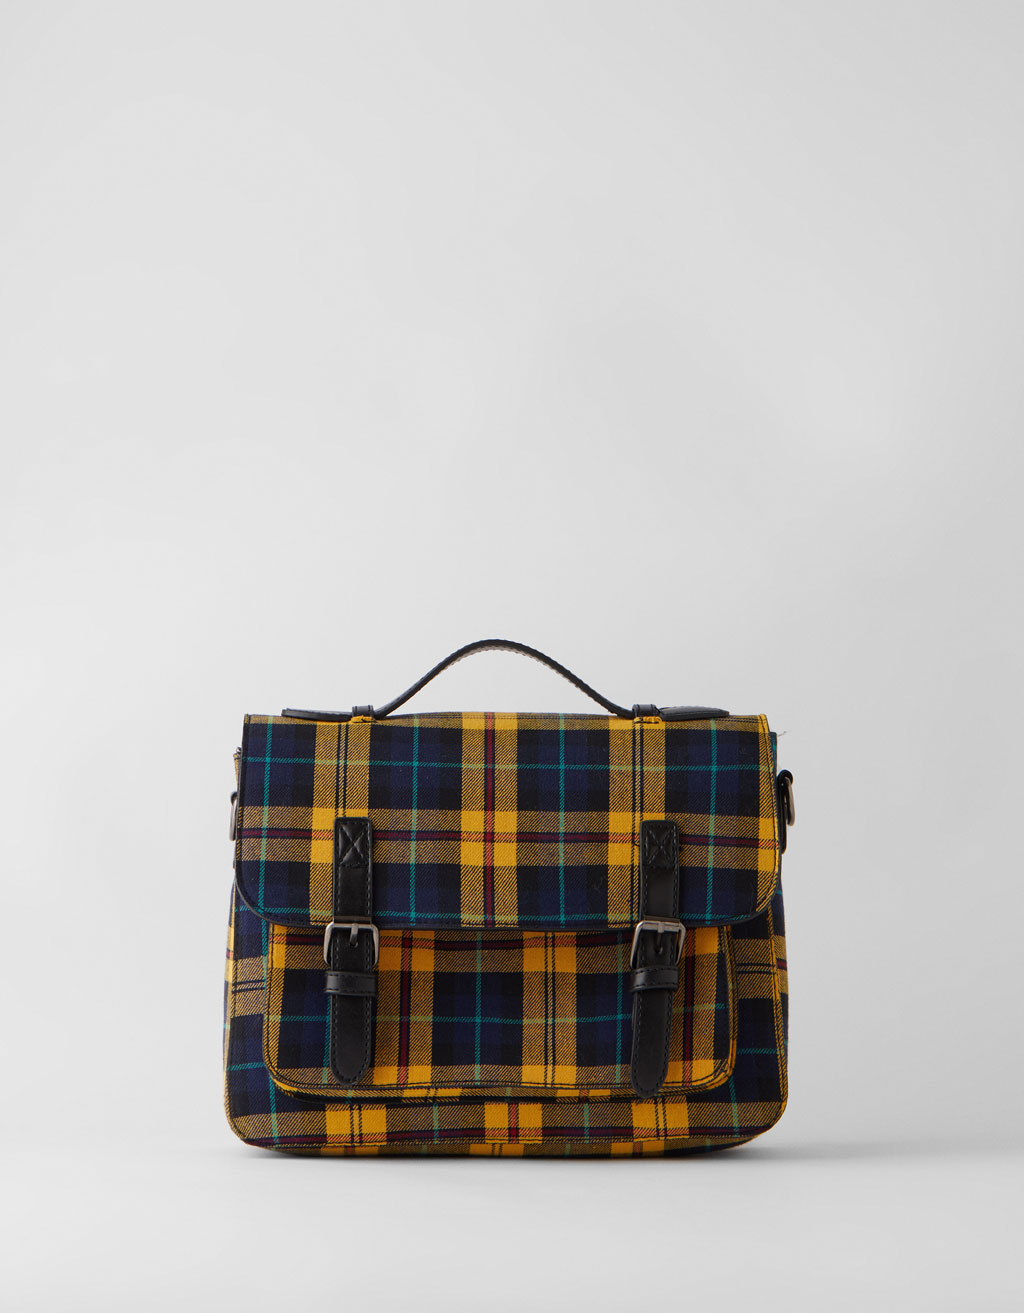 Plaid bag